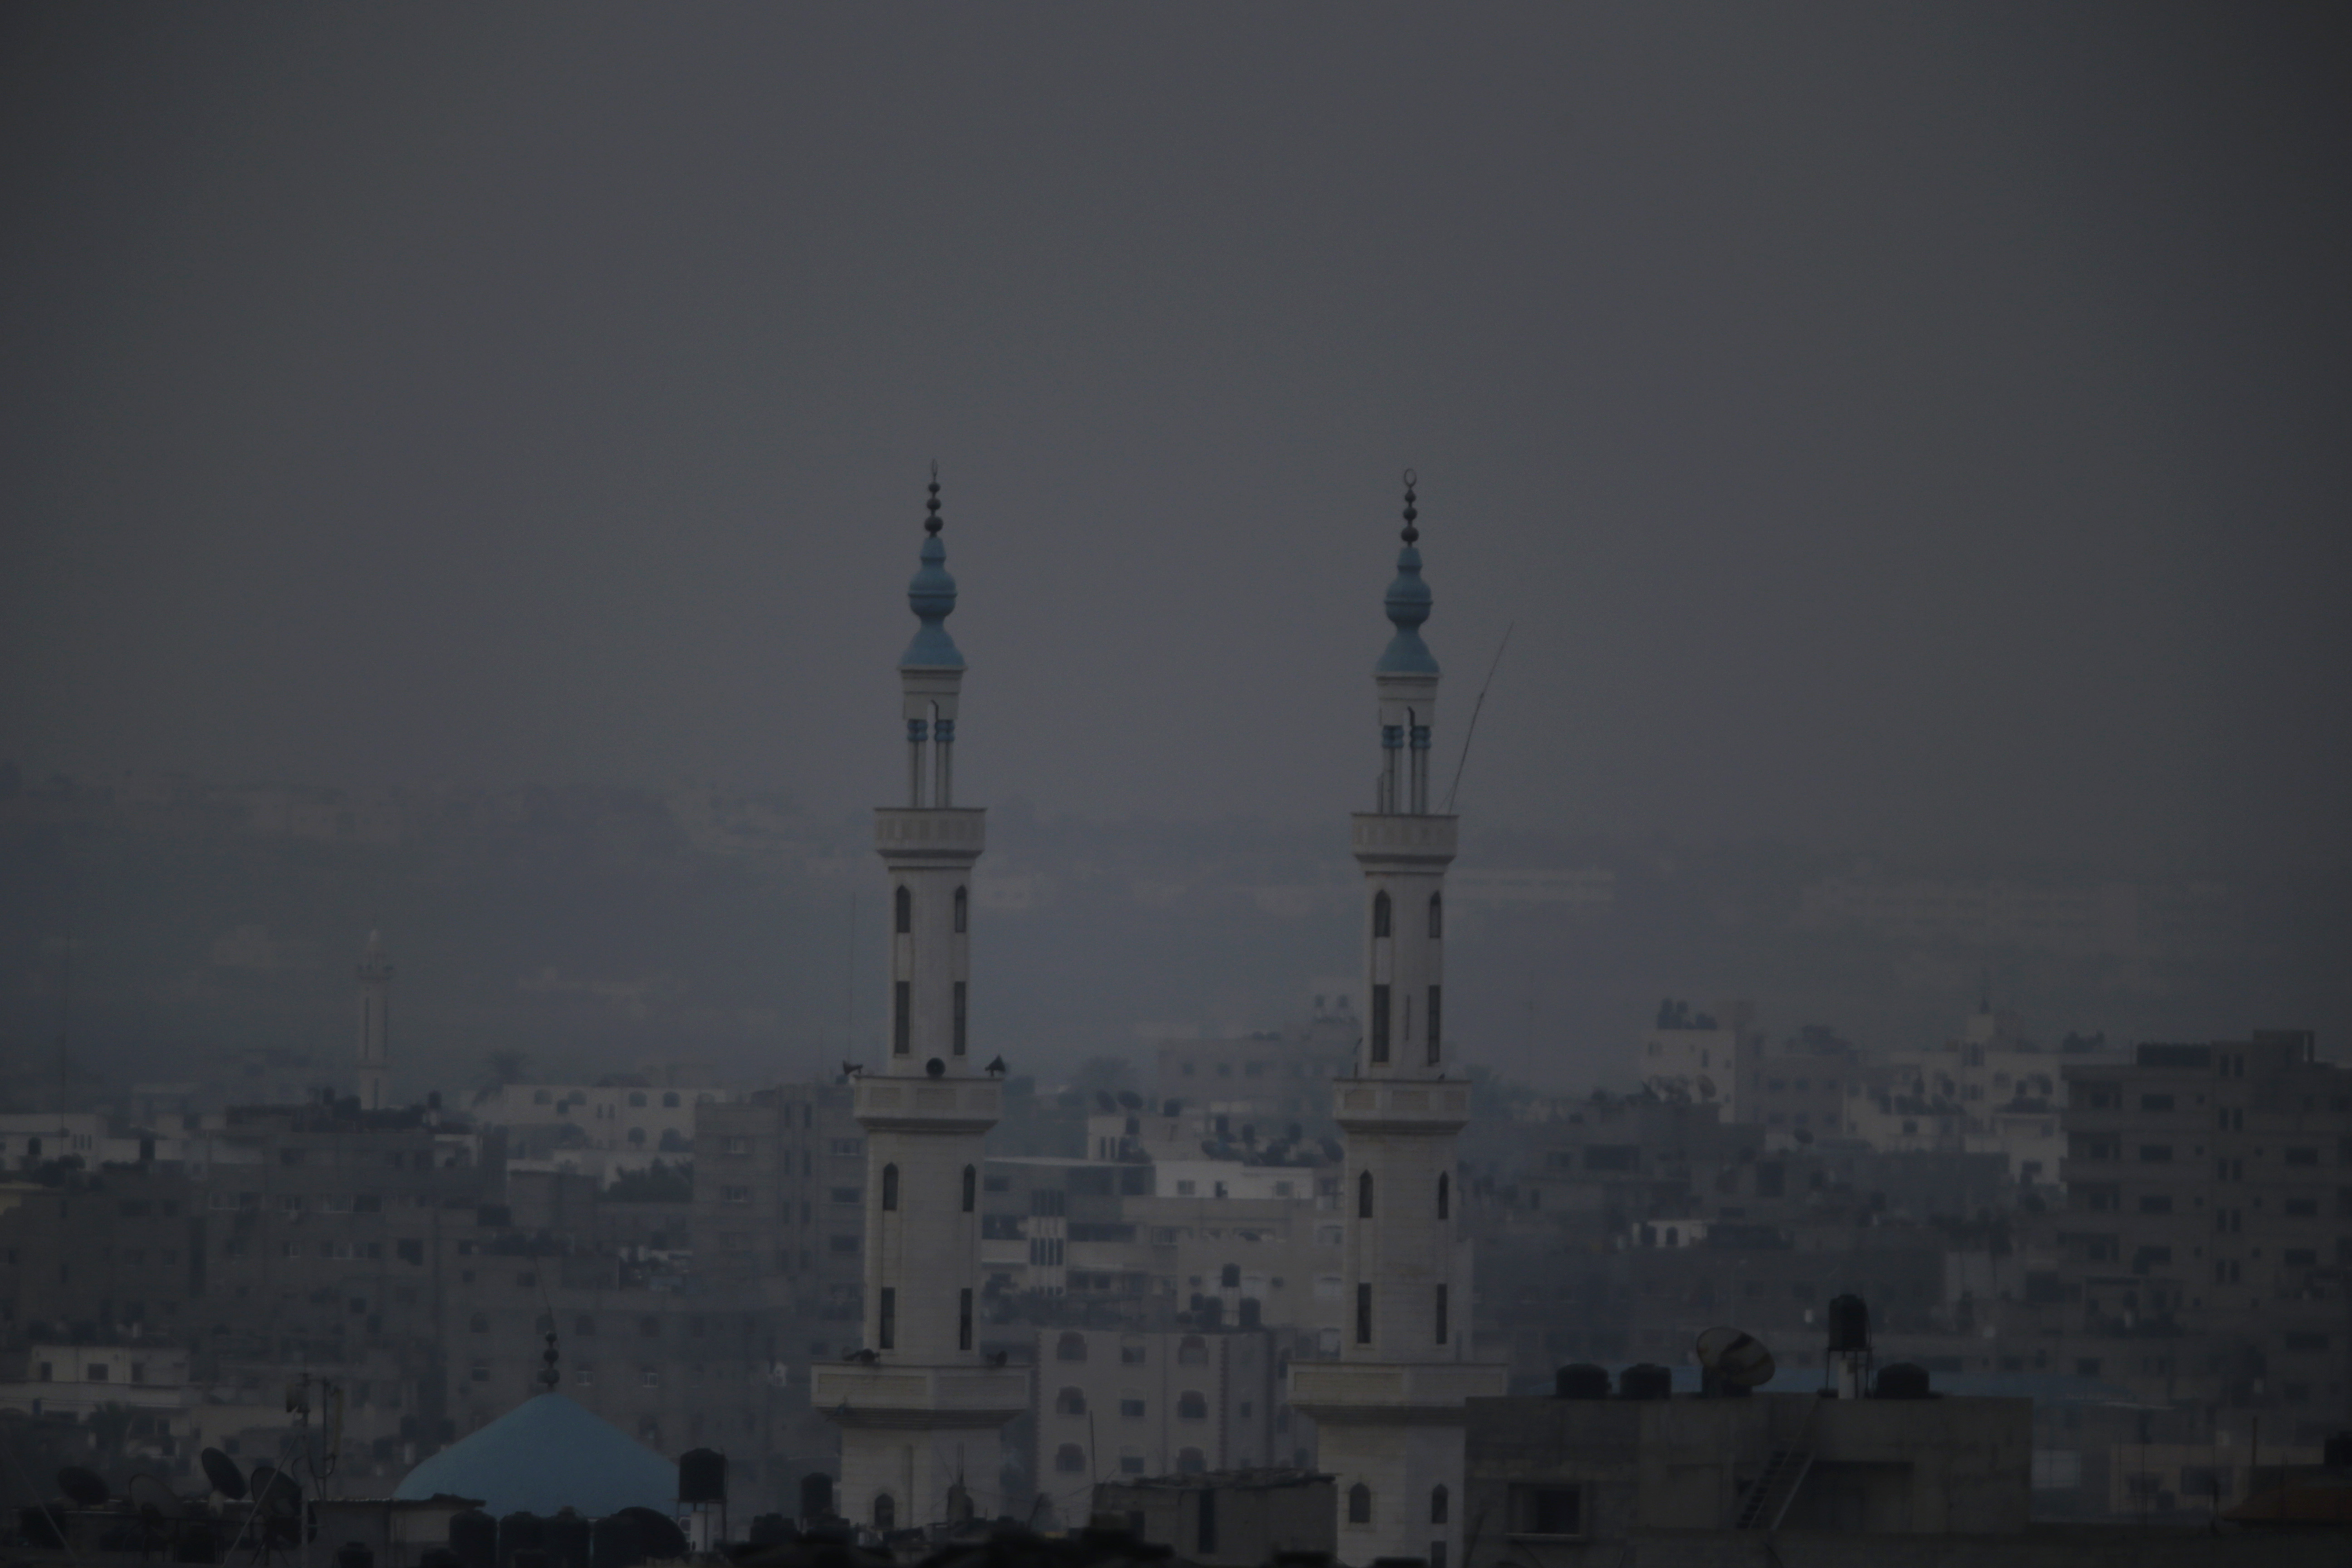 Monday marked the beginning of the three-day Eid al-Fitr holiday, which caps the Muslim fasting month of Ramadan. Minarets from a mosque are seen in this view of Gaza city, July 28, 2014.